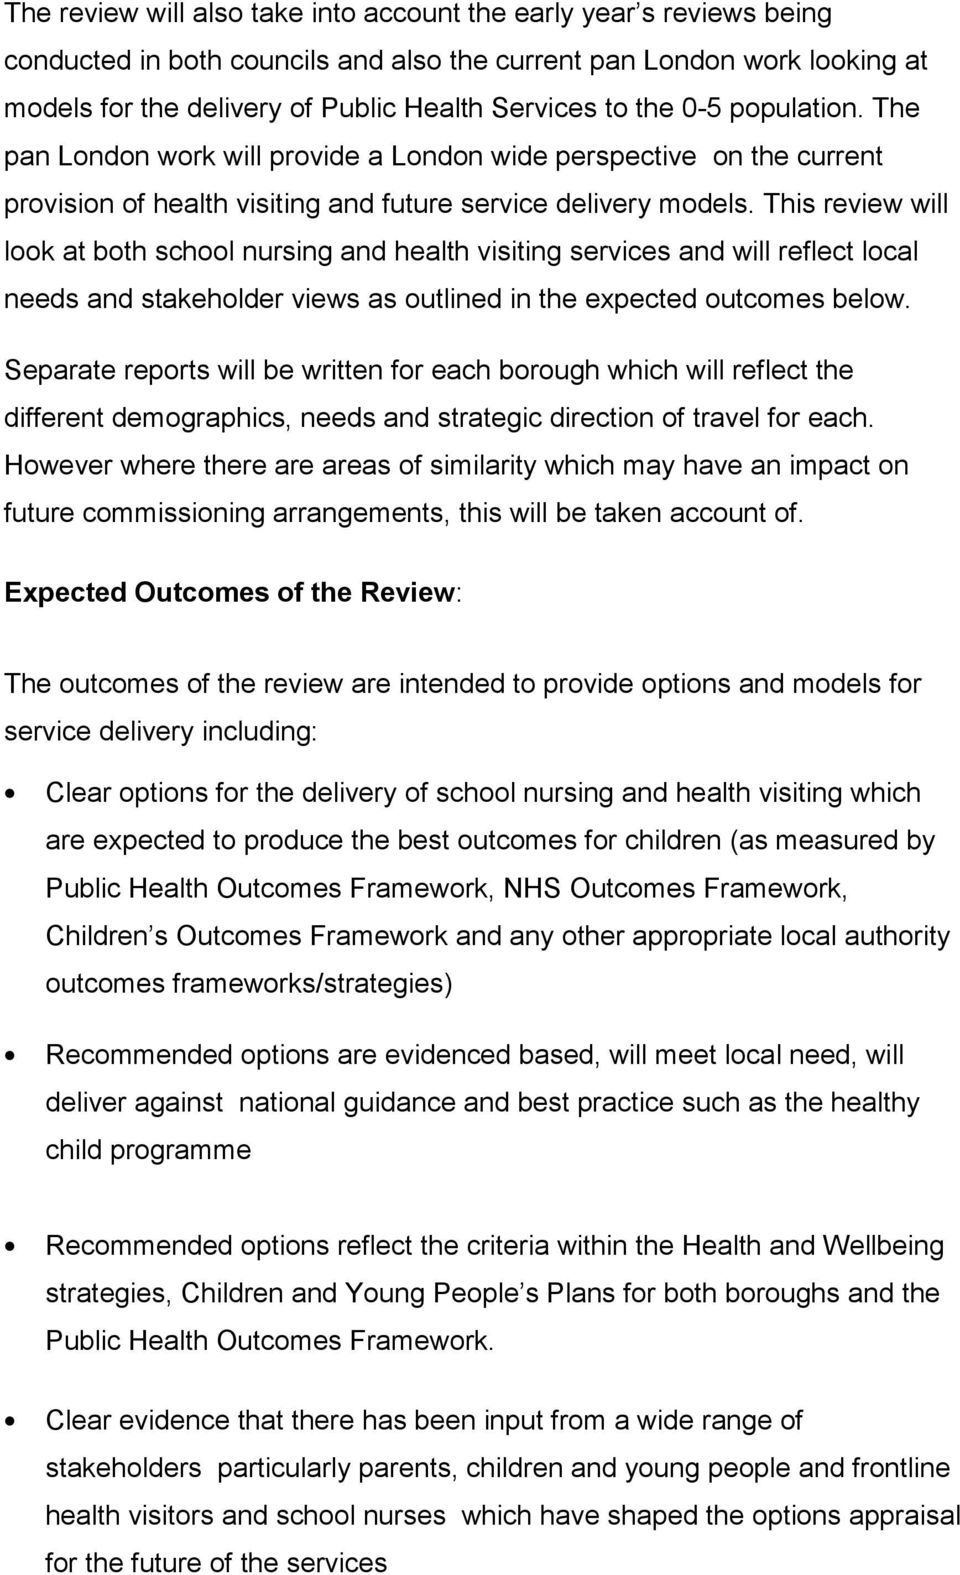 This review will look at both school nursing and health visiting services and will reflect local needs and stakeholder views as outlined in the expected outcomes below.